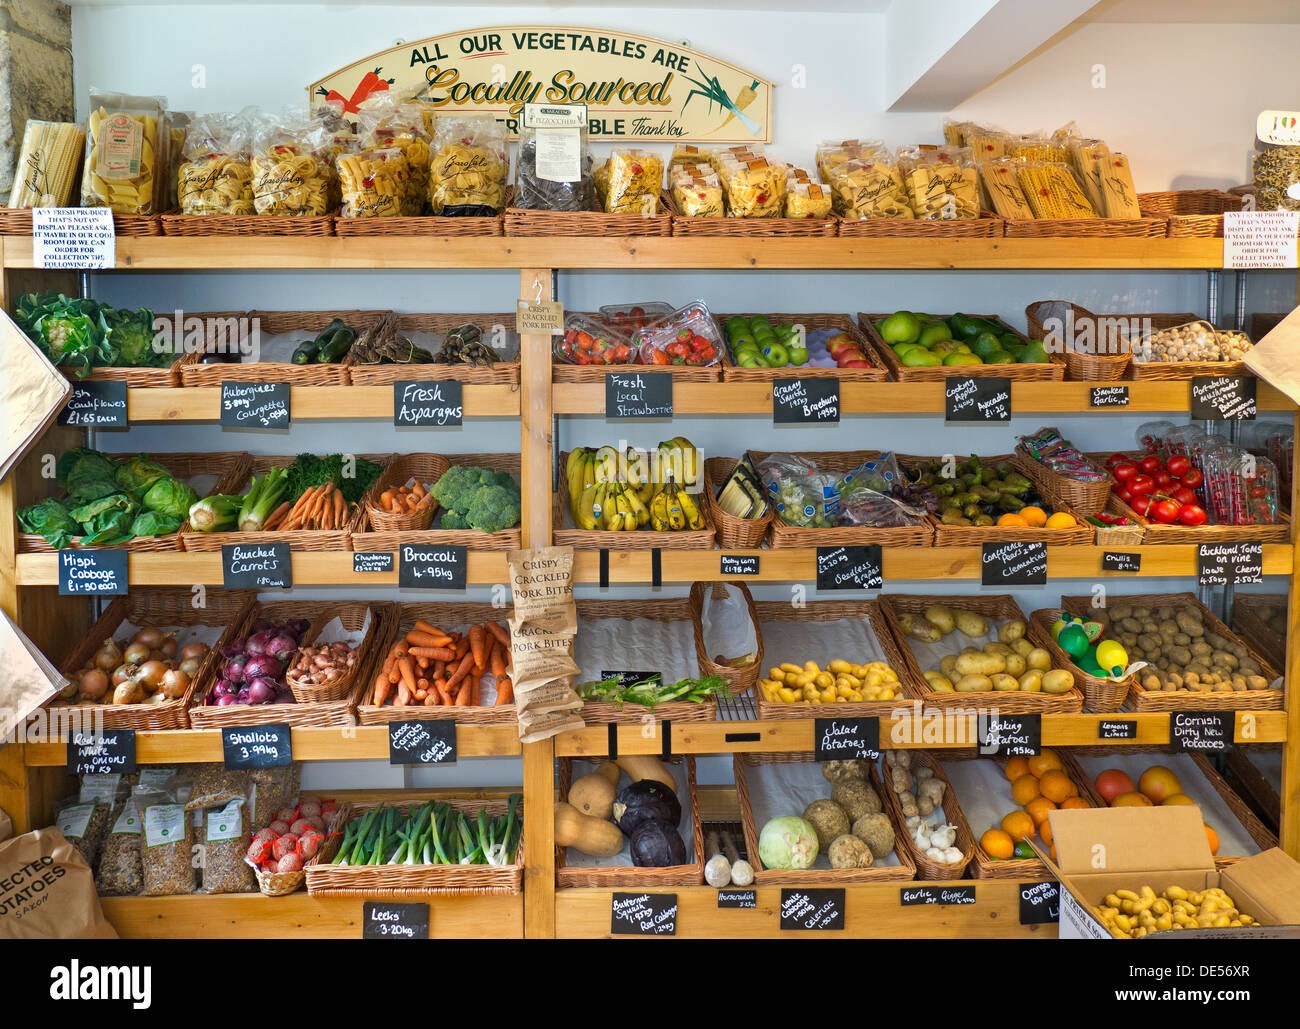 Traditional high street produce farm shop interior with fresh local fruit and vegetables on sale Stow on the Wold Cotswolds UK - Stock Image